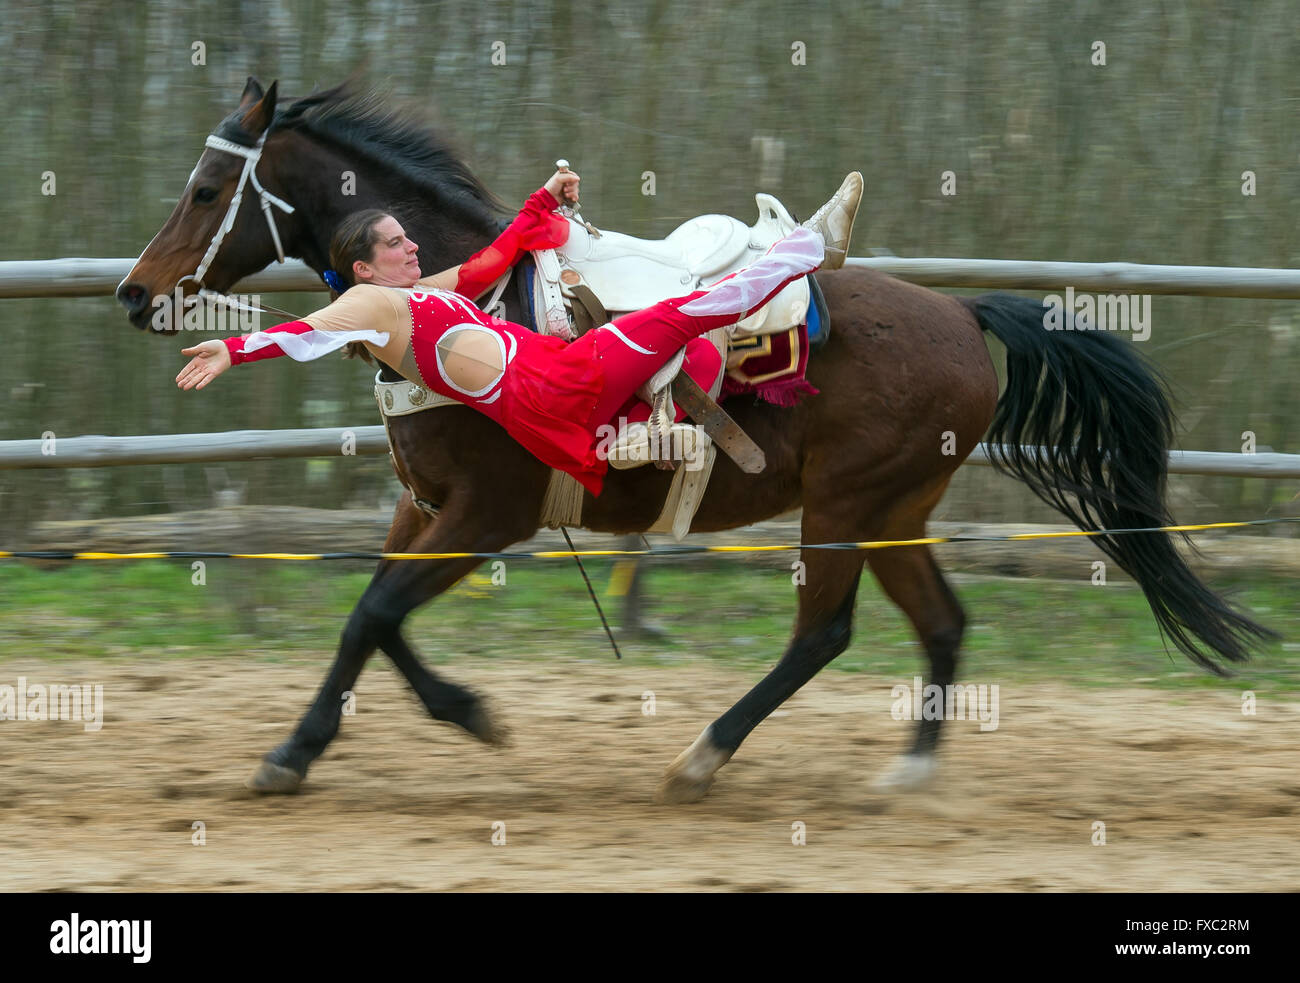 Muencheberg, Germany. 04th Apr, 2016. Stunt rider Daja Ziefuss rides her horse Eden and shows off a trick at Sunbow - Stock Image